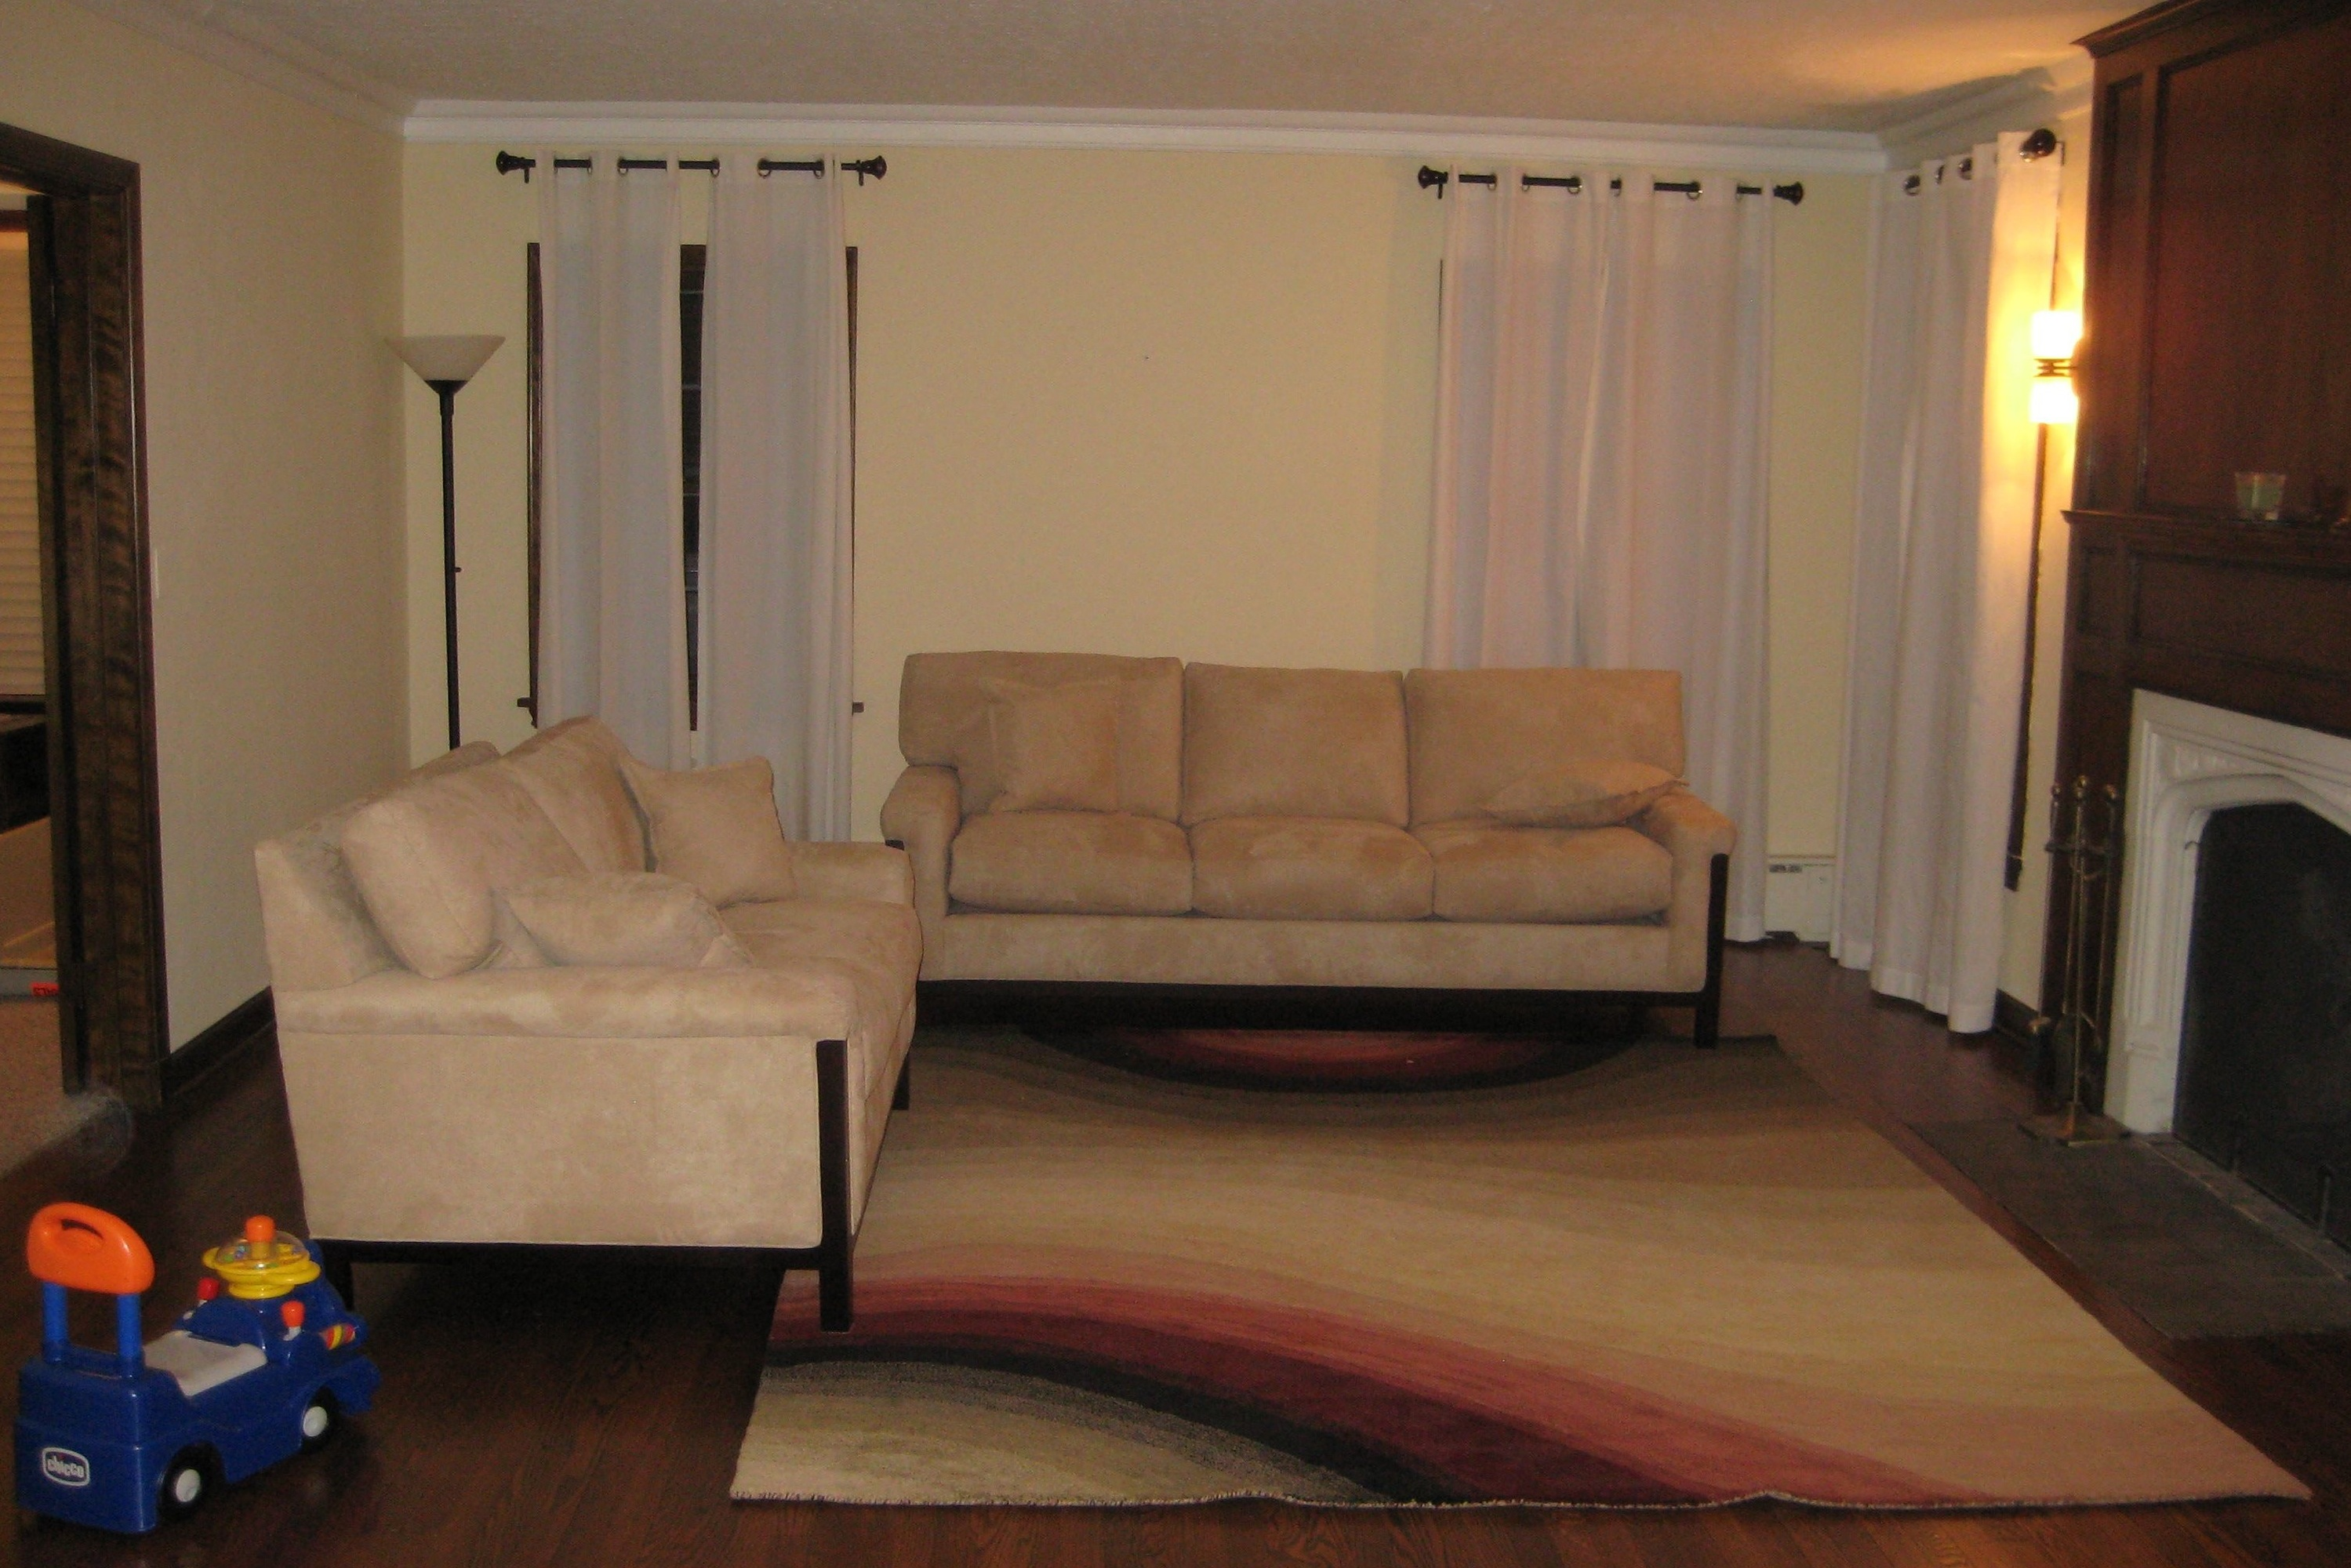 Living rooms with hardwood floors interior decorating for Interior decorating help